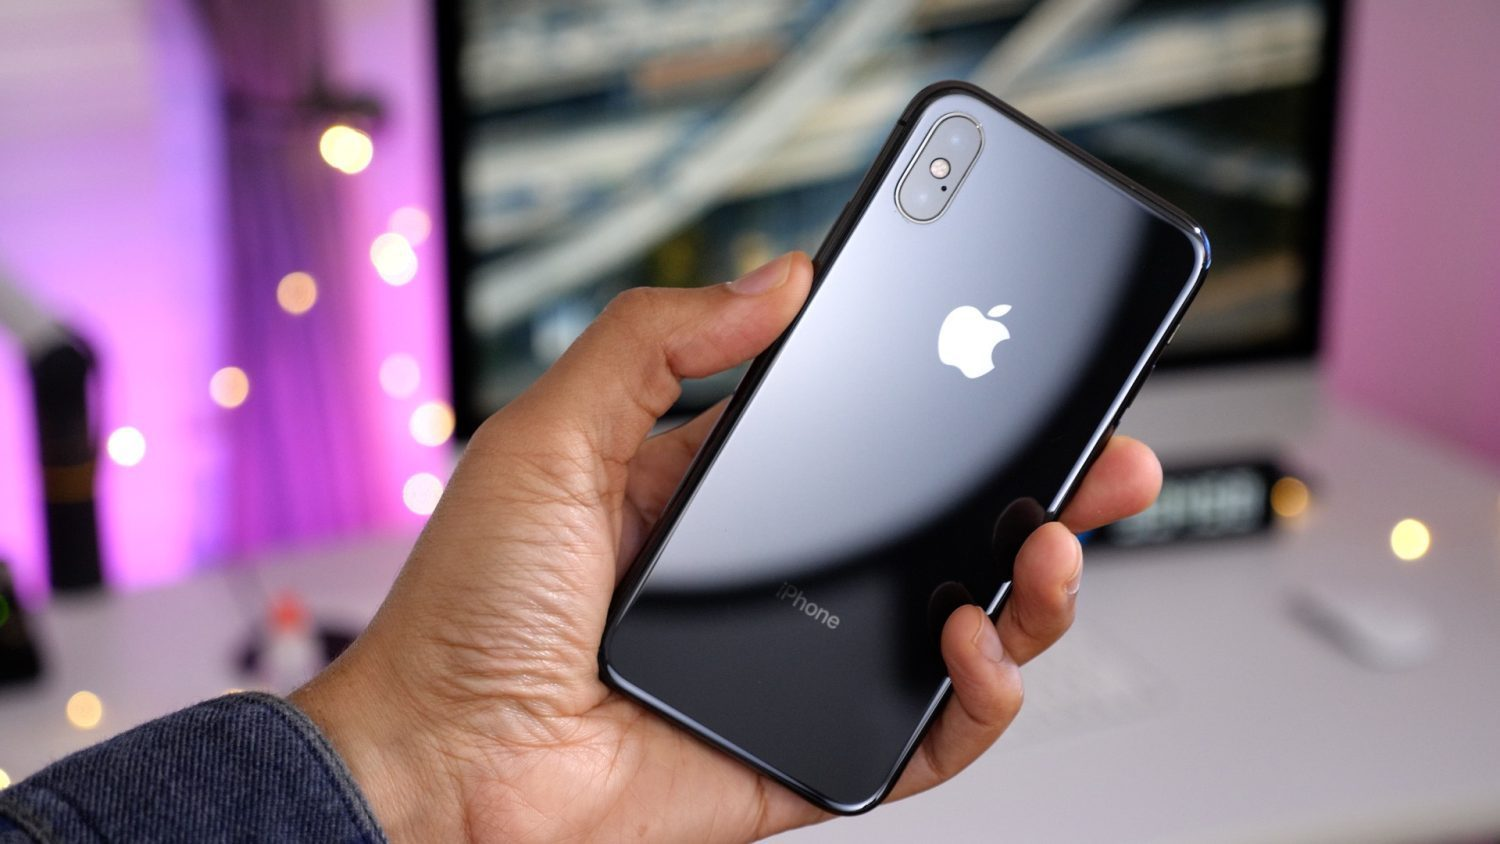 The iPhone X is dead, or so they say.